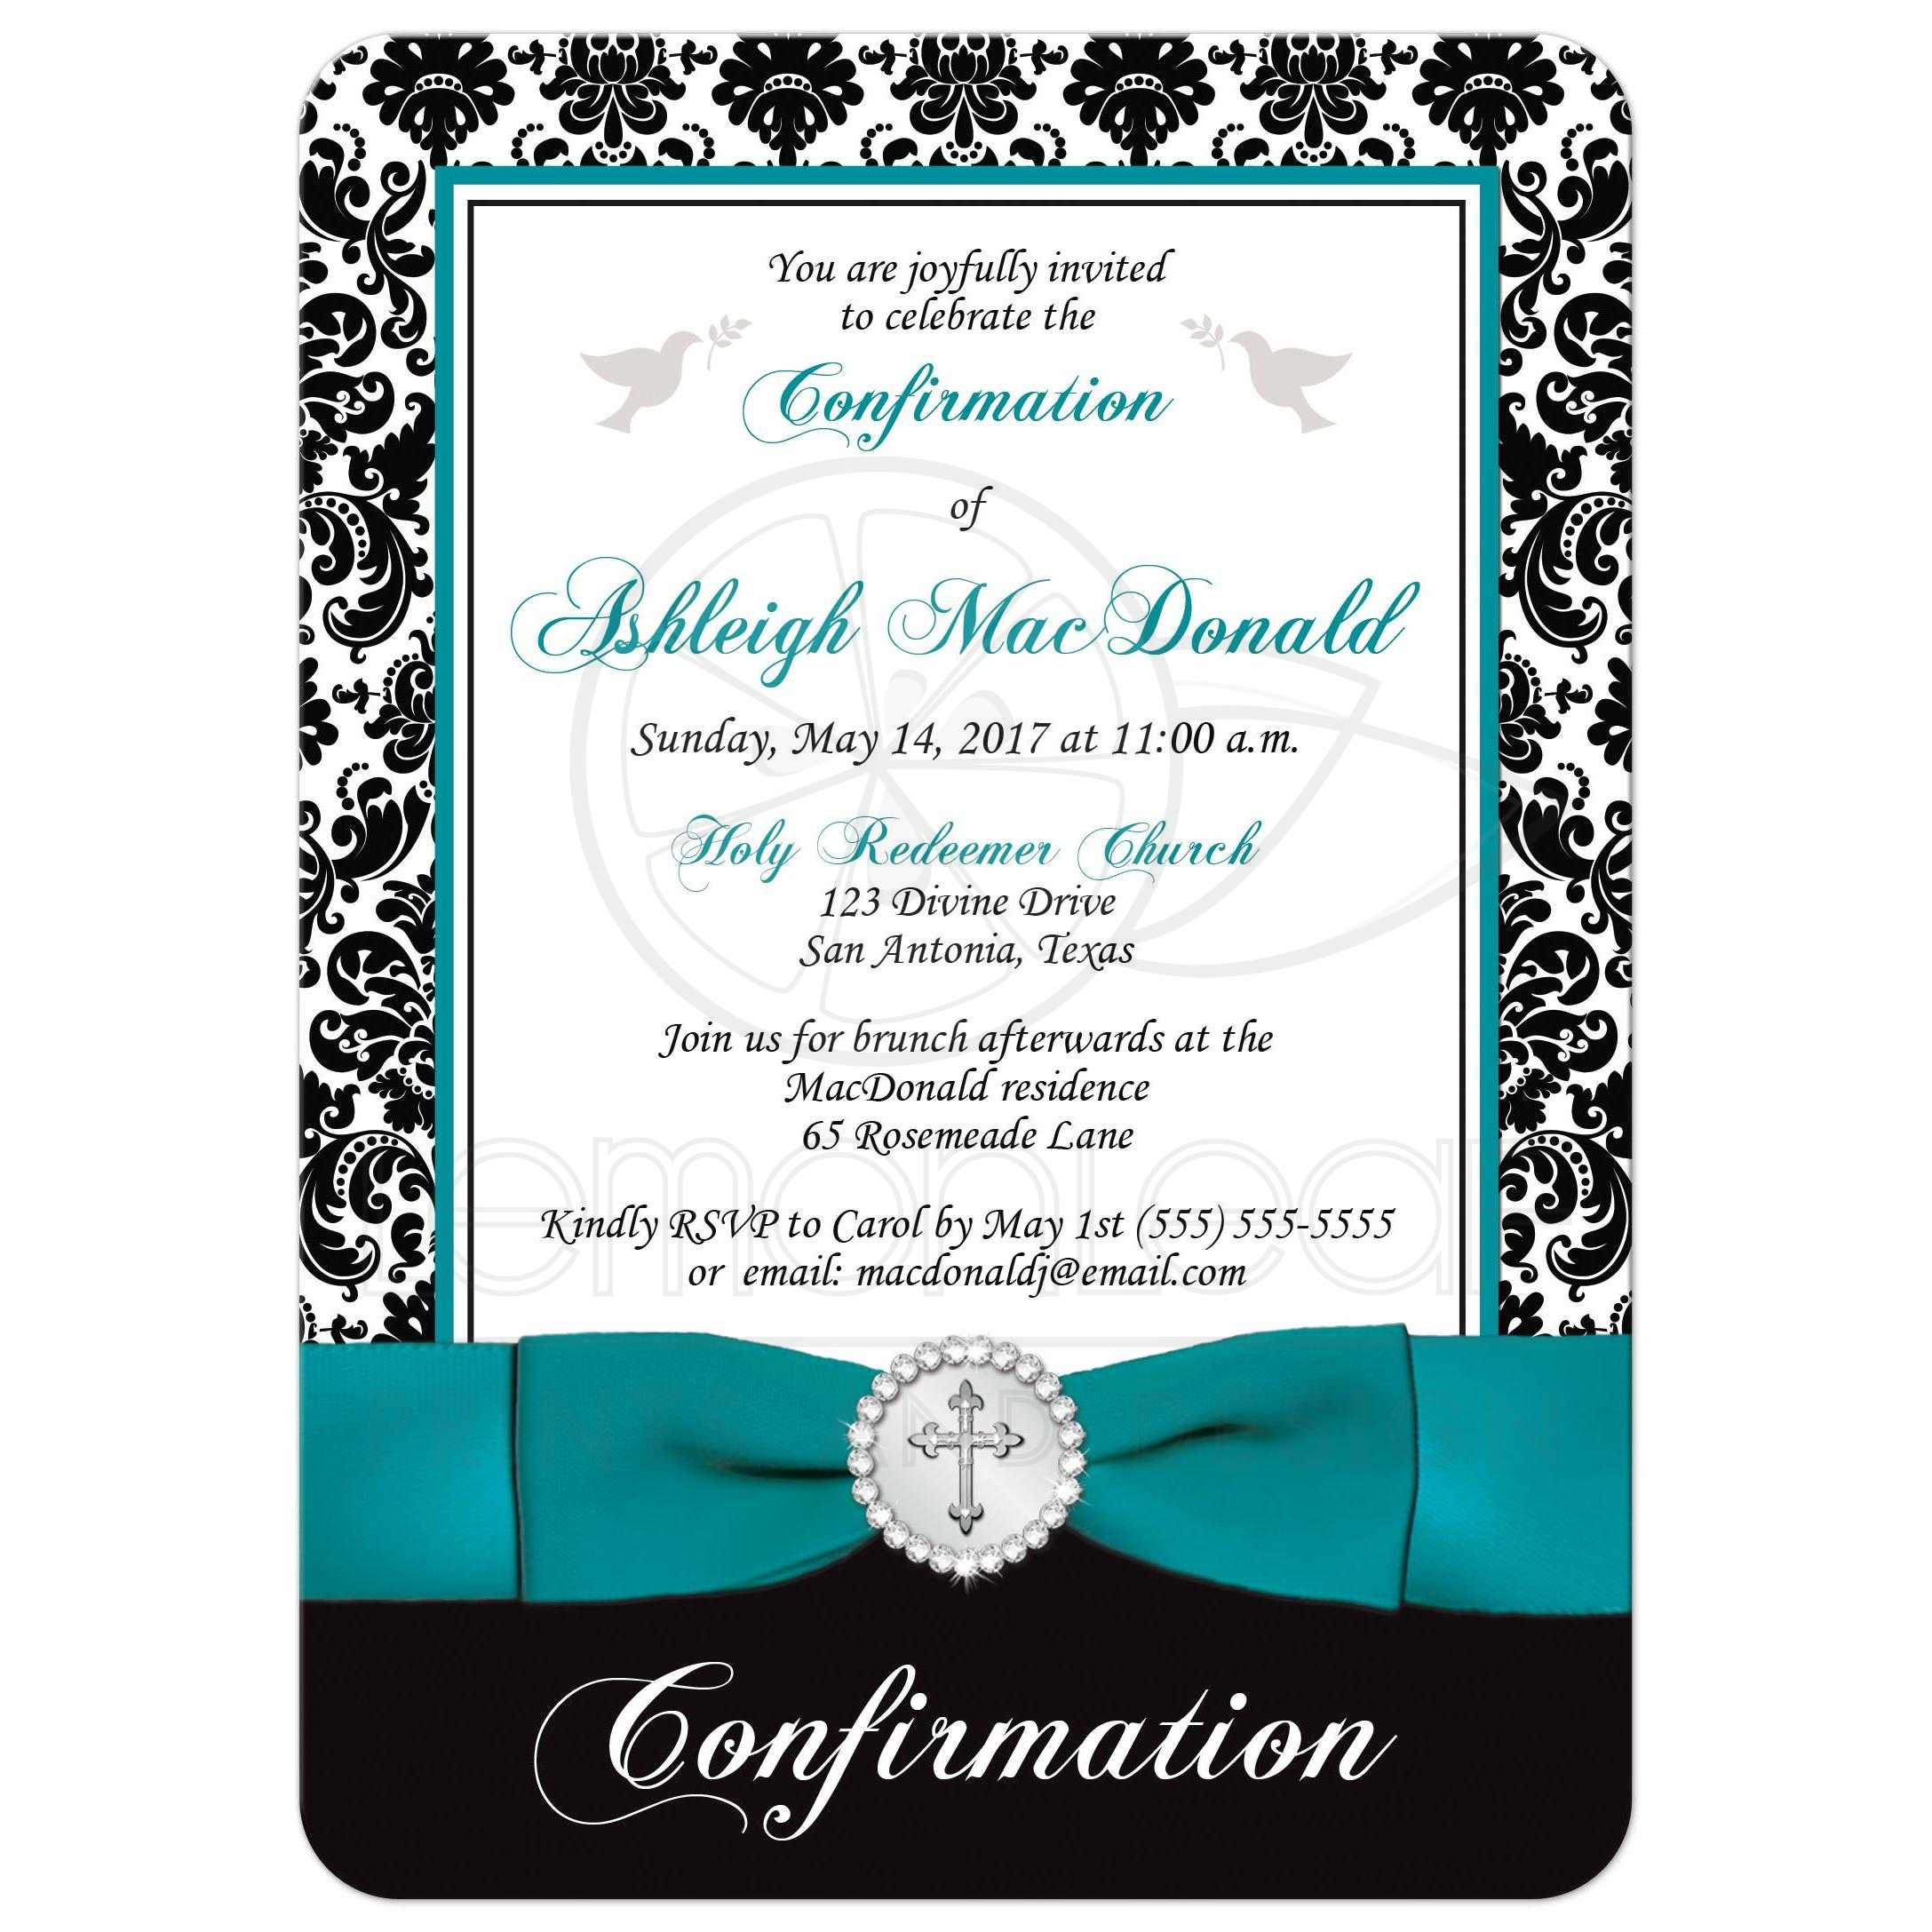 Elegant Confirmation Invitation | Black, White Damask | PRINTED Teal  Ribbon, Silver Jeweled Brooch with Cross